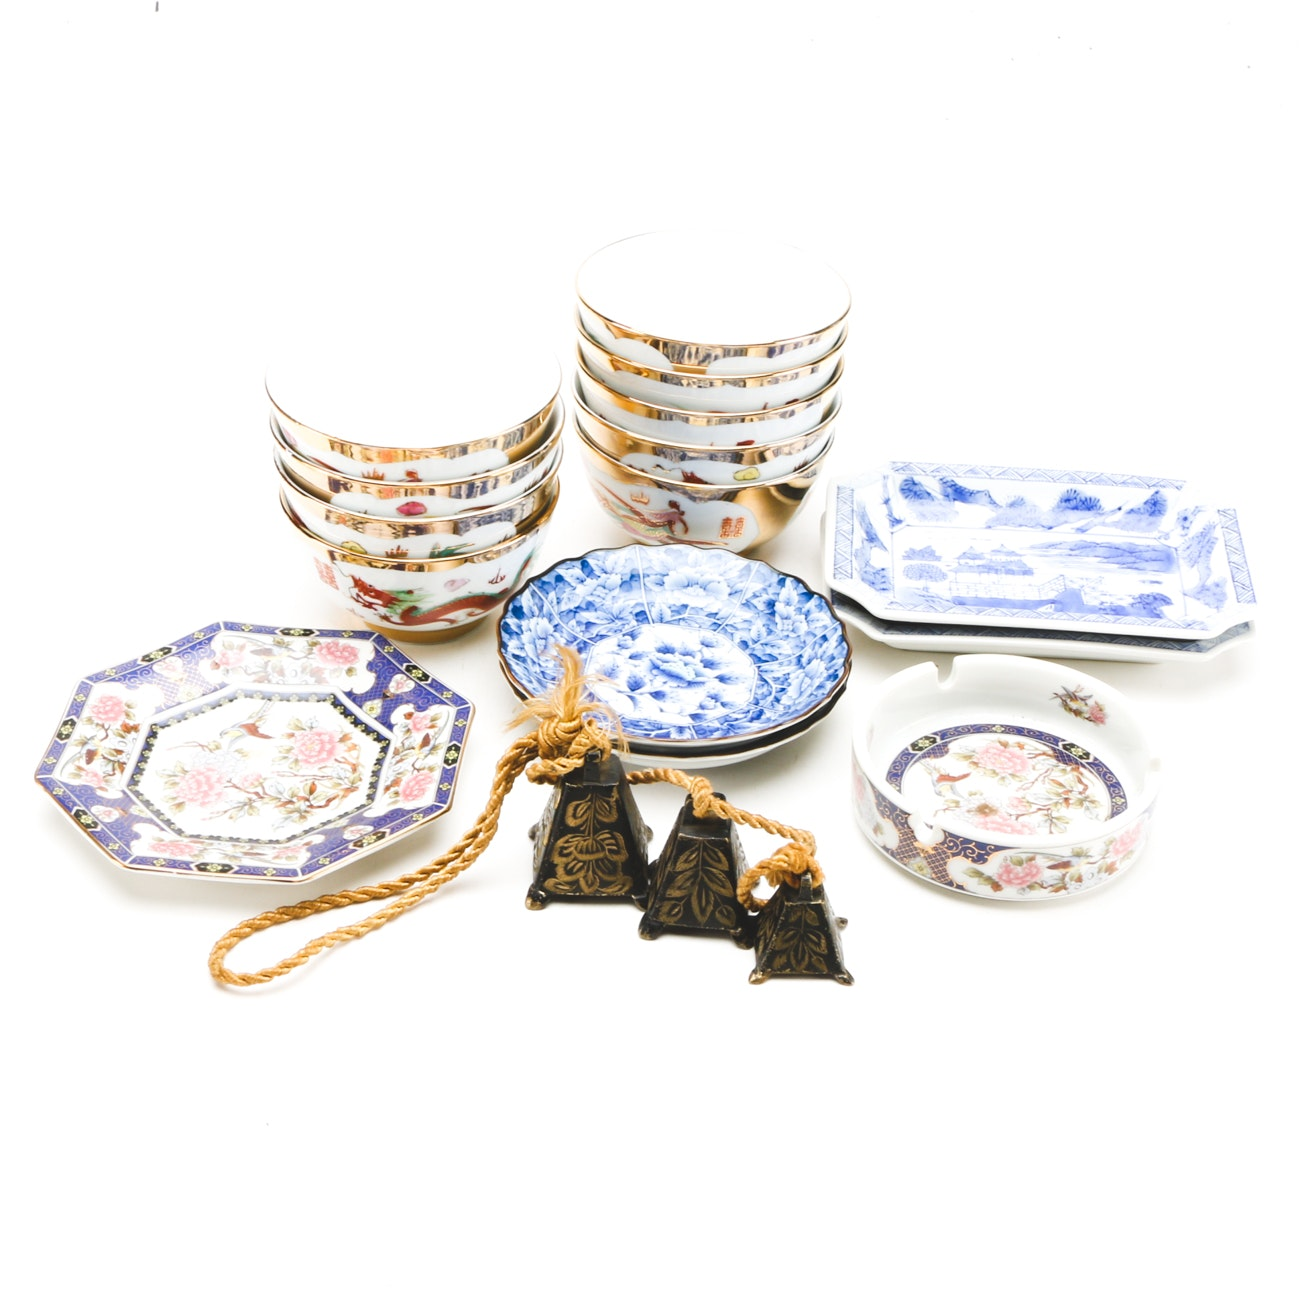 East Asian Decorated Bowls and Plates